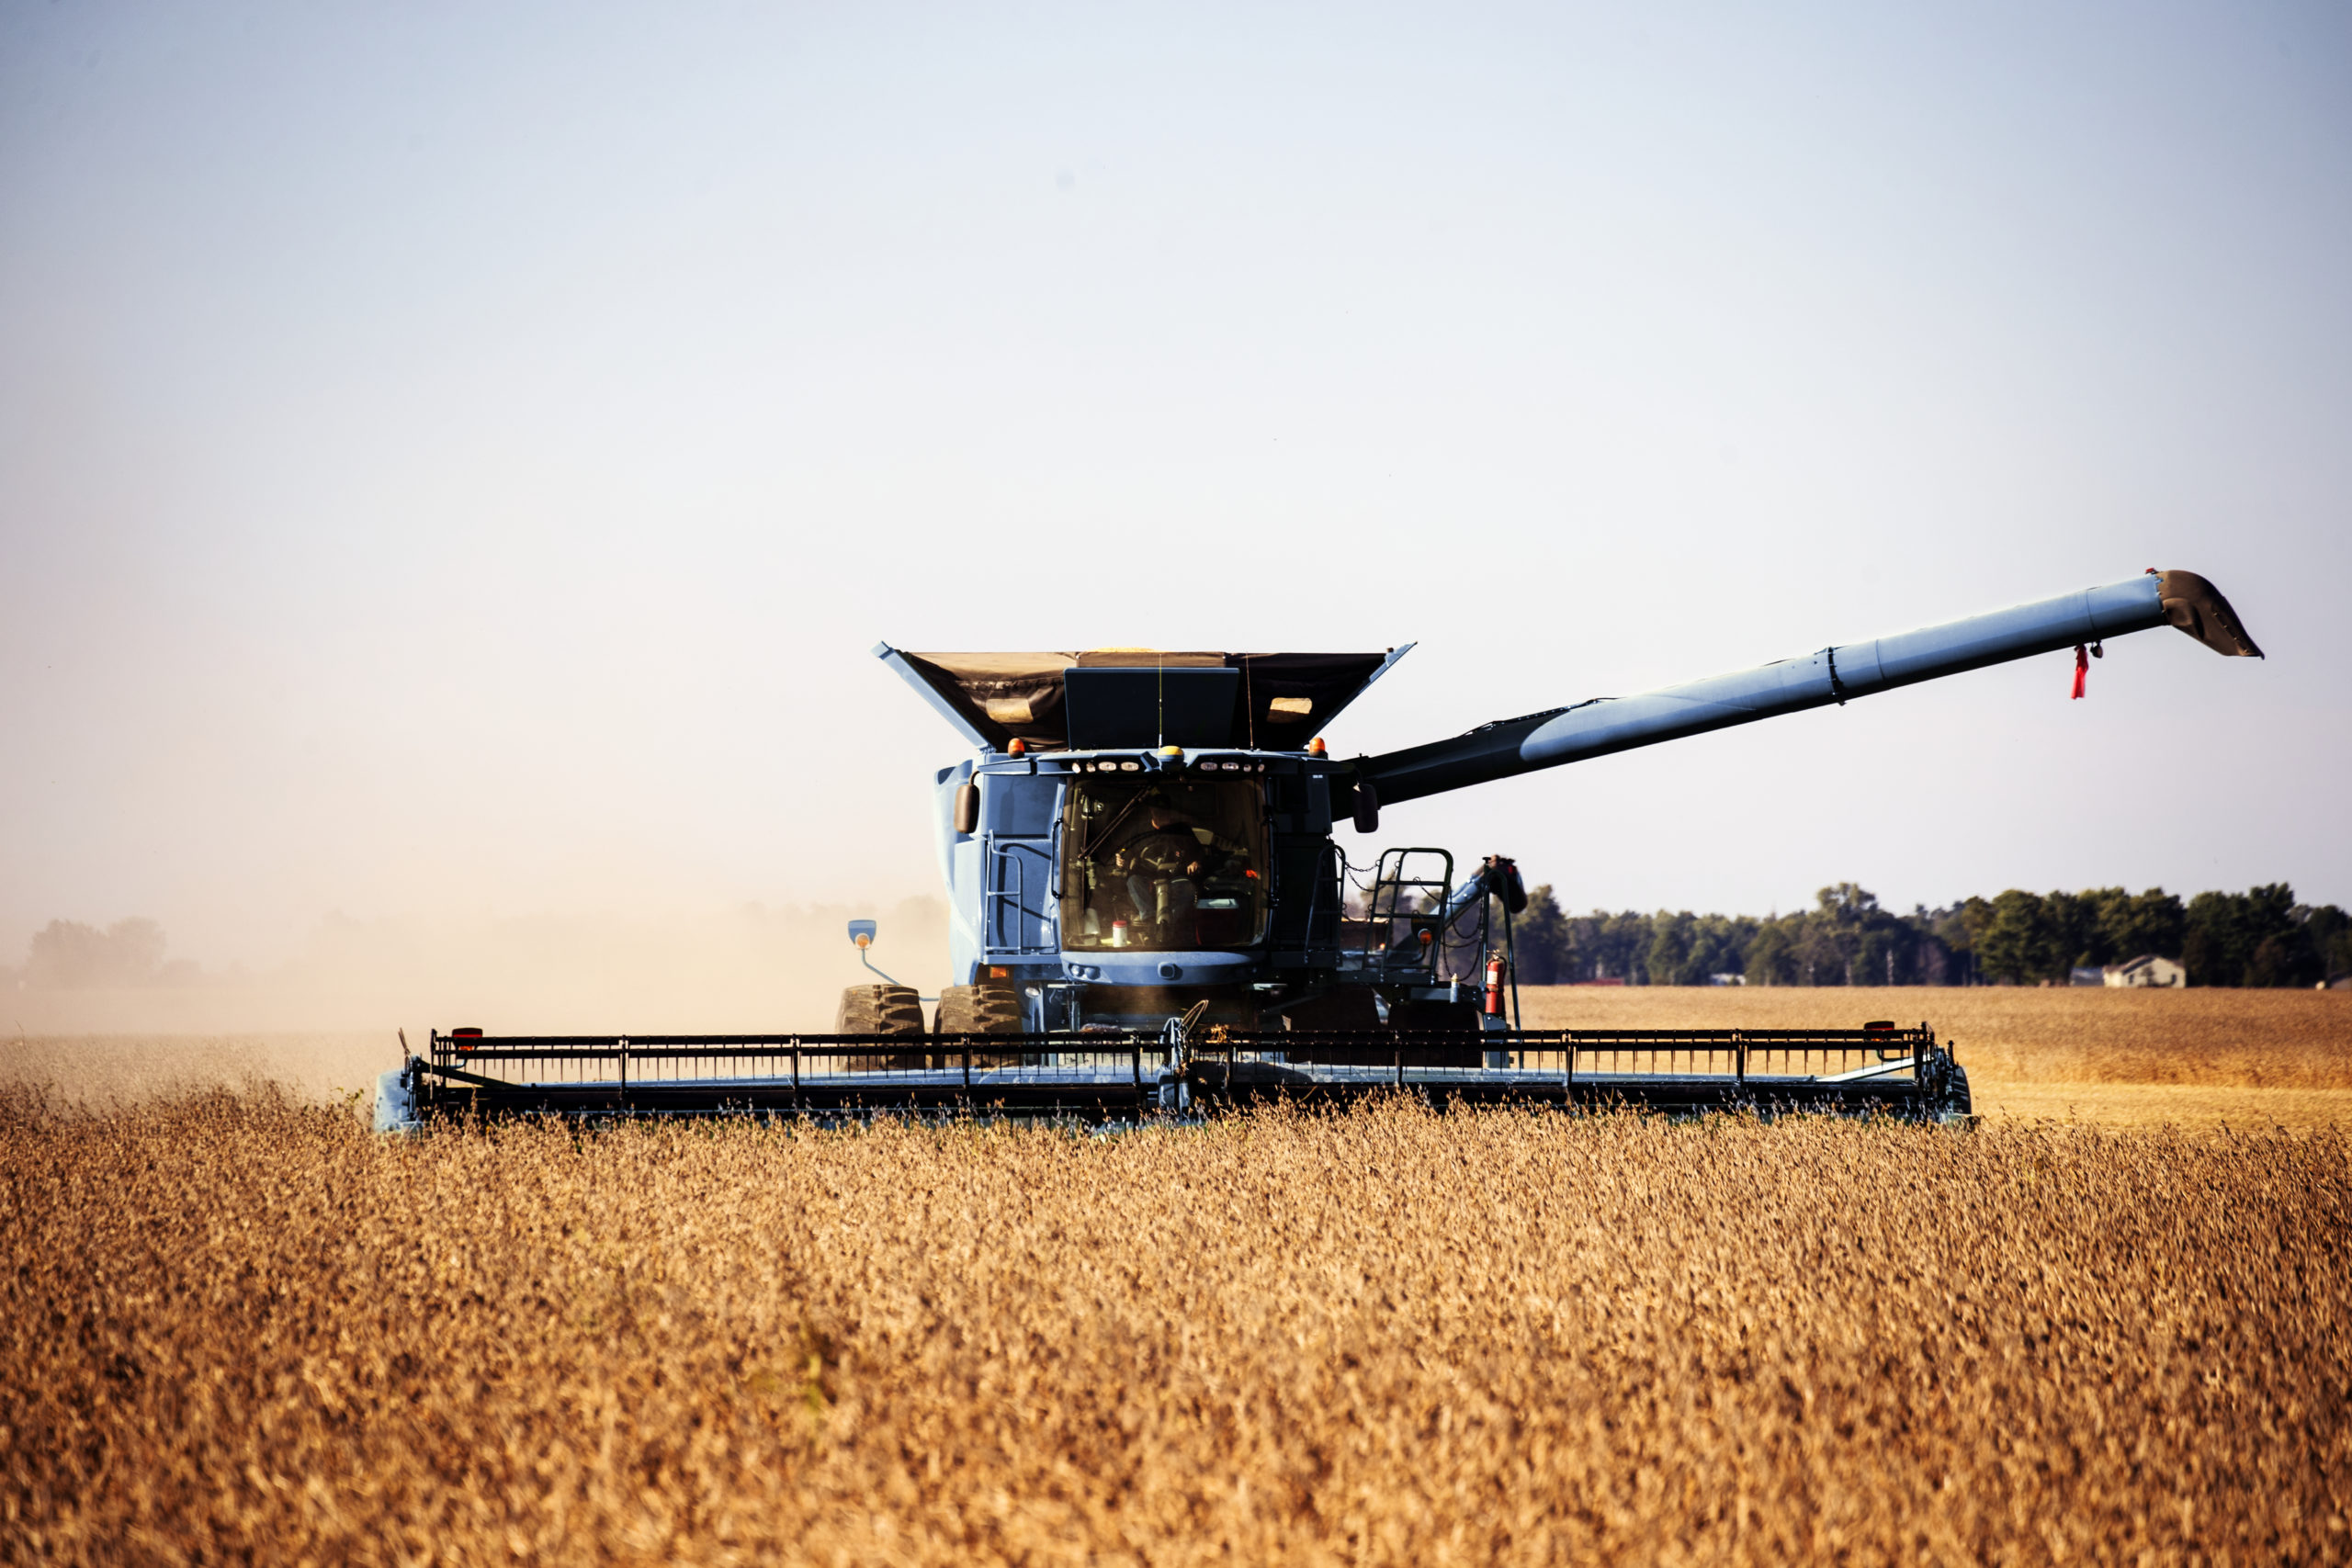 A harvesting operation kicks up dust in rural Carroll County, Indiana. Original image from Carol M. Highsmith's America, Library of Congress collection. Digitally enhanced by rawpixel.